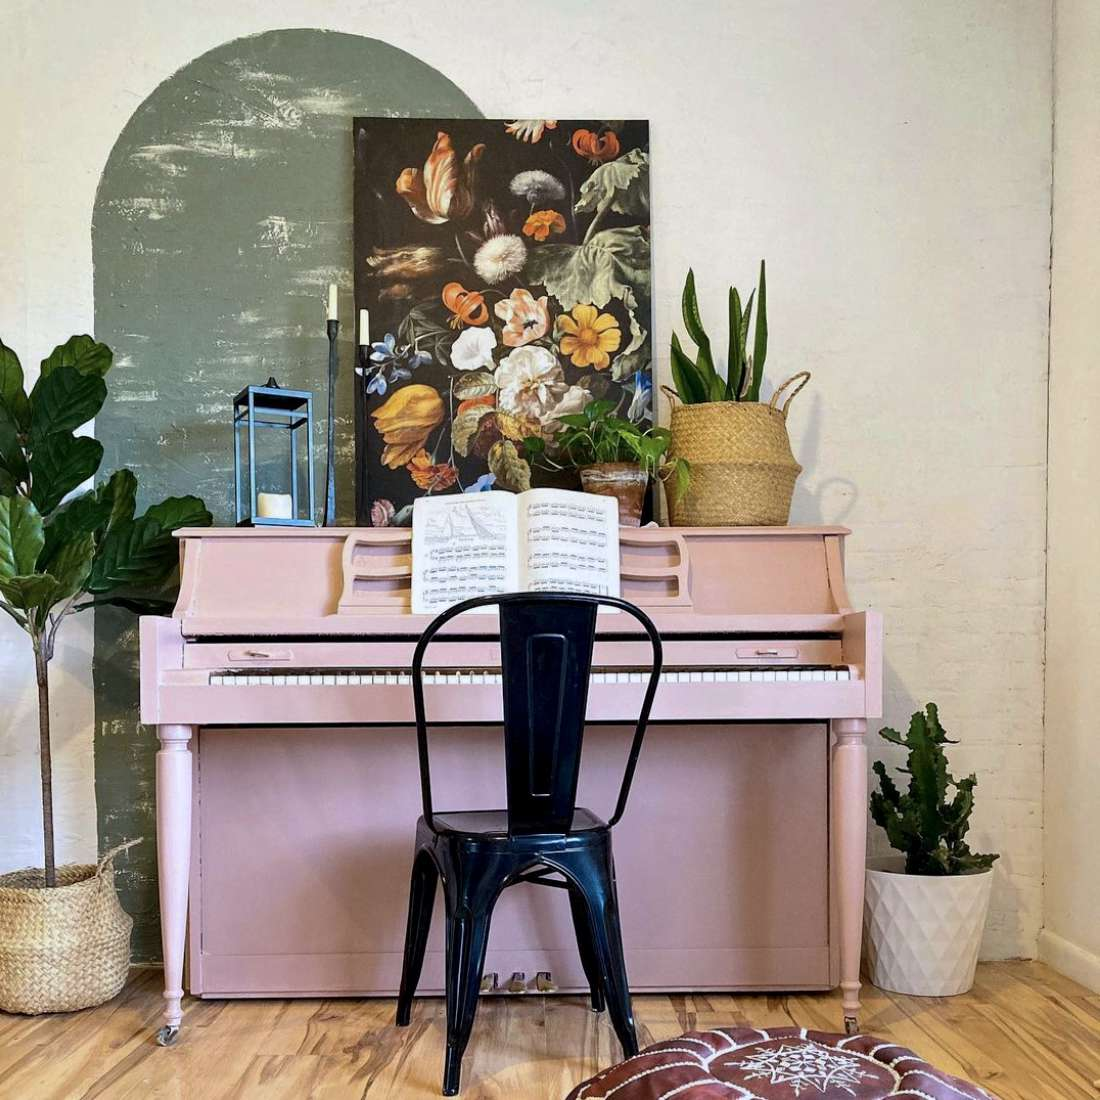 painted white brick wall with green oval painted over, pink piano against wall